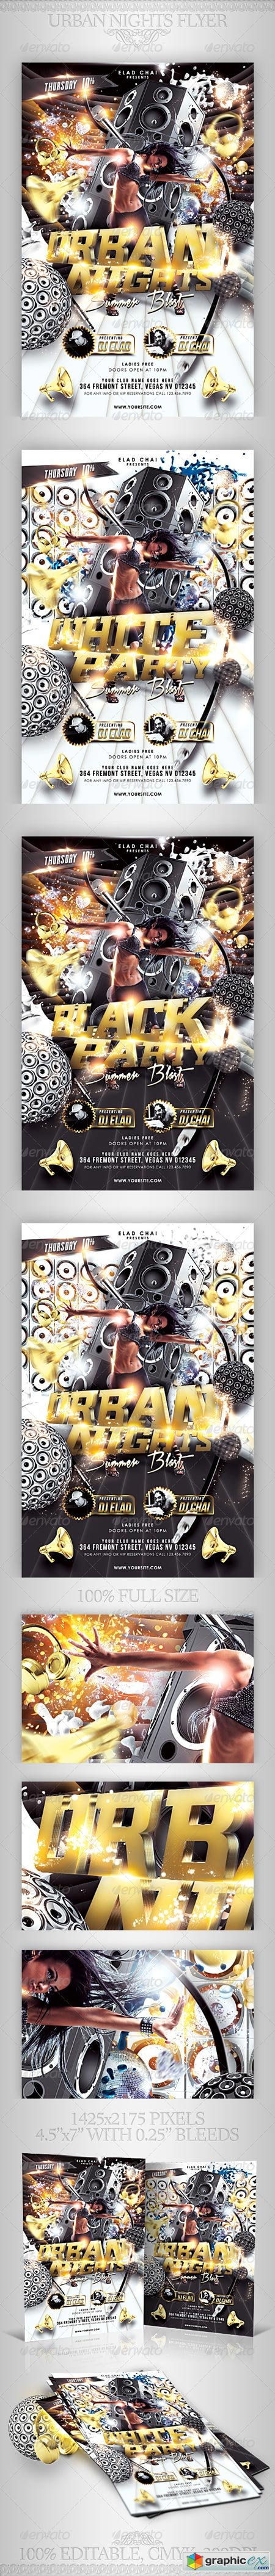 Urban Nights Flyer Template 2388549